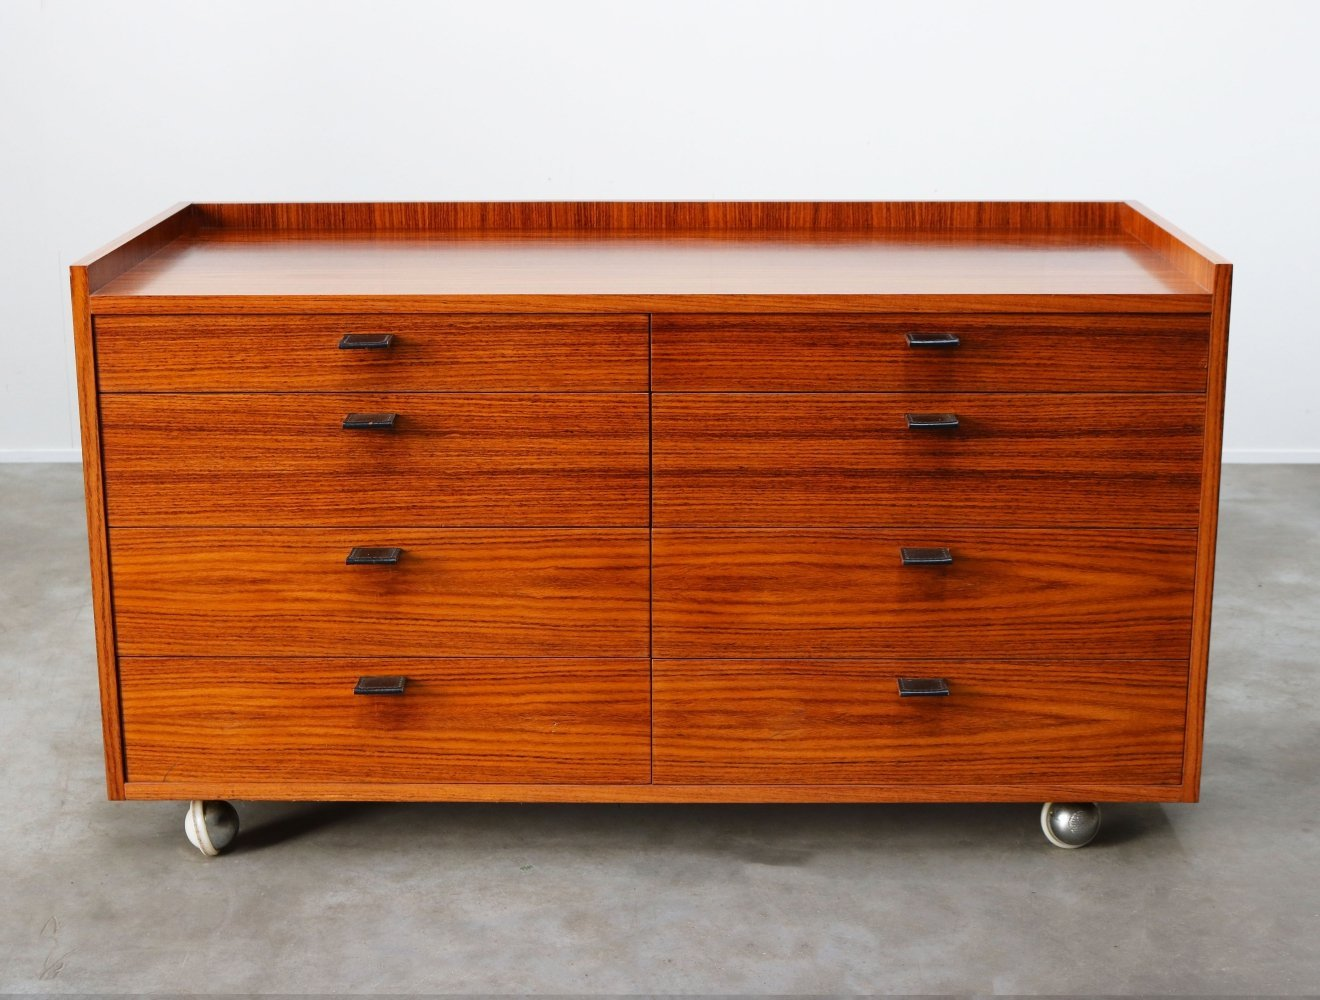 Chest of Drawers in rosewood by Florence Knoll for De Coene / Knoll, 1950s